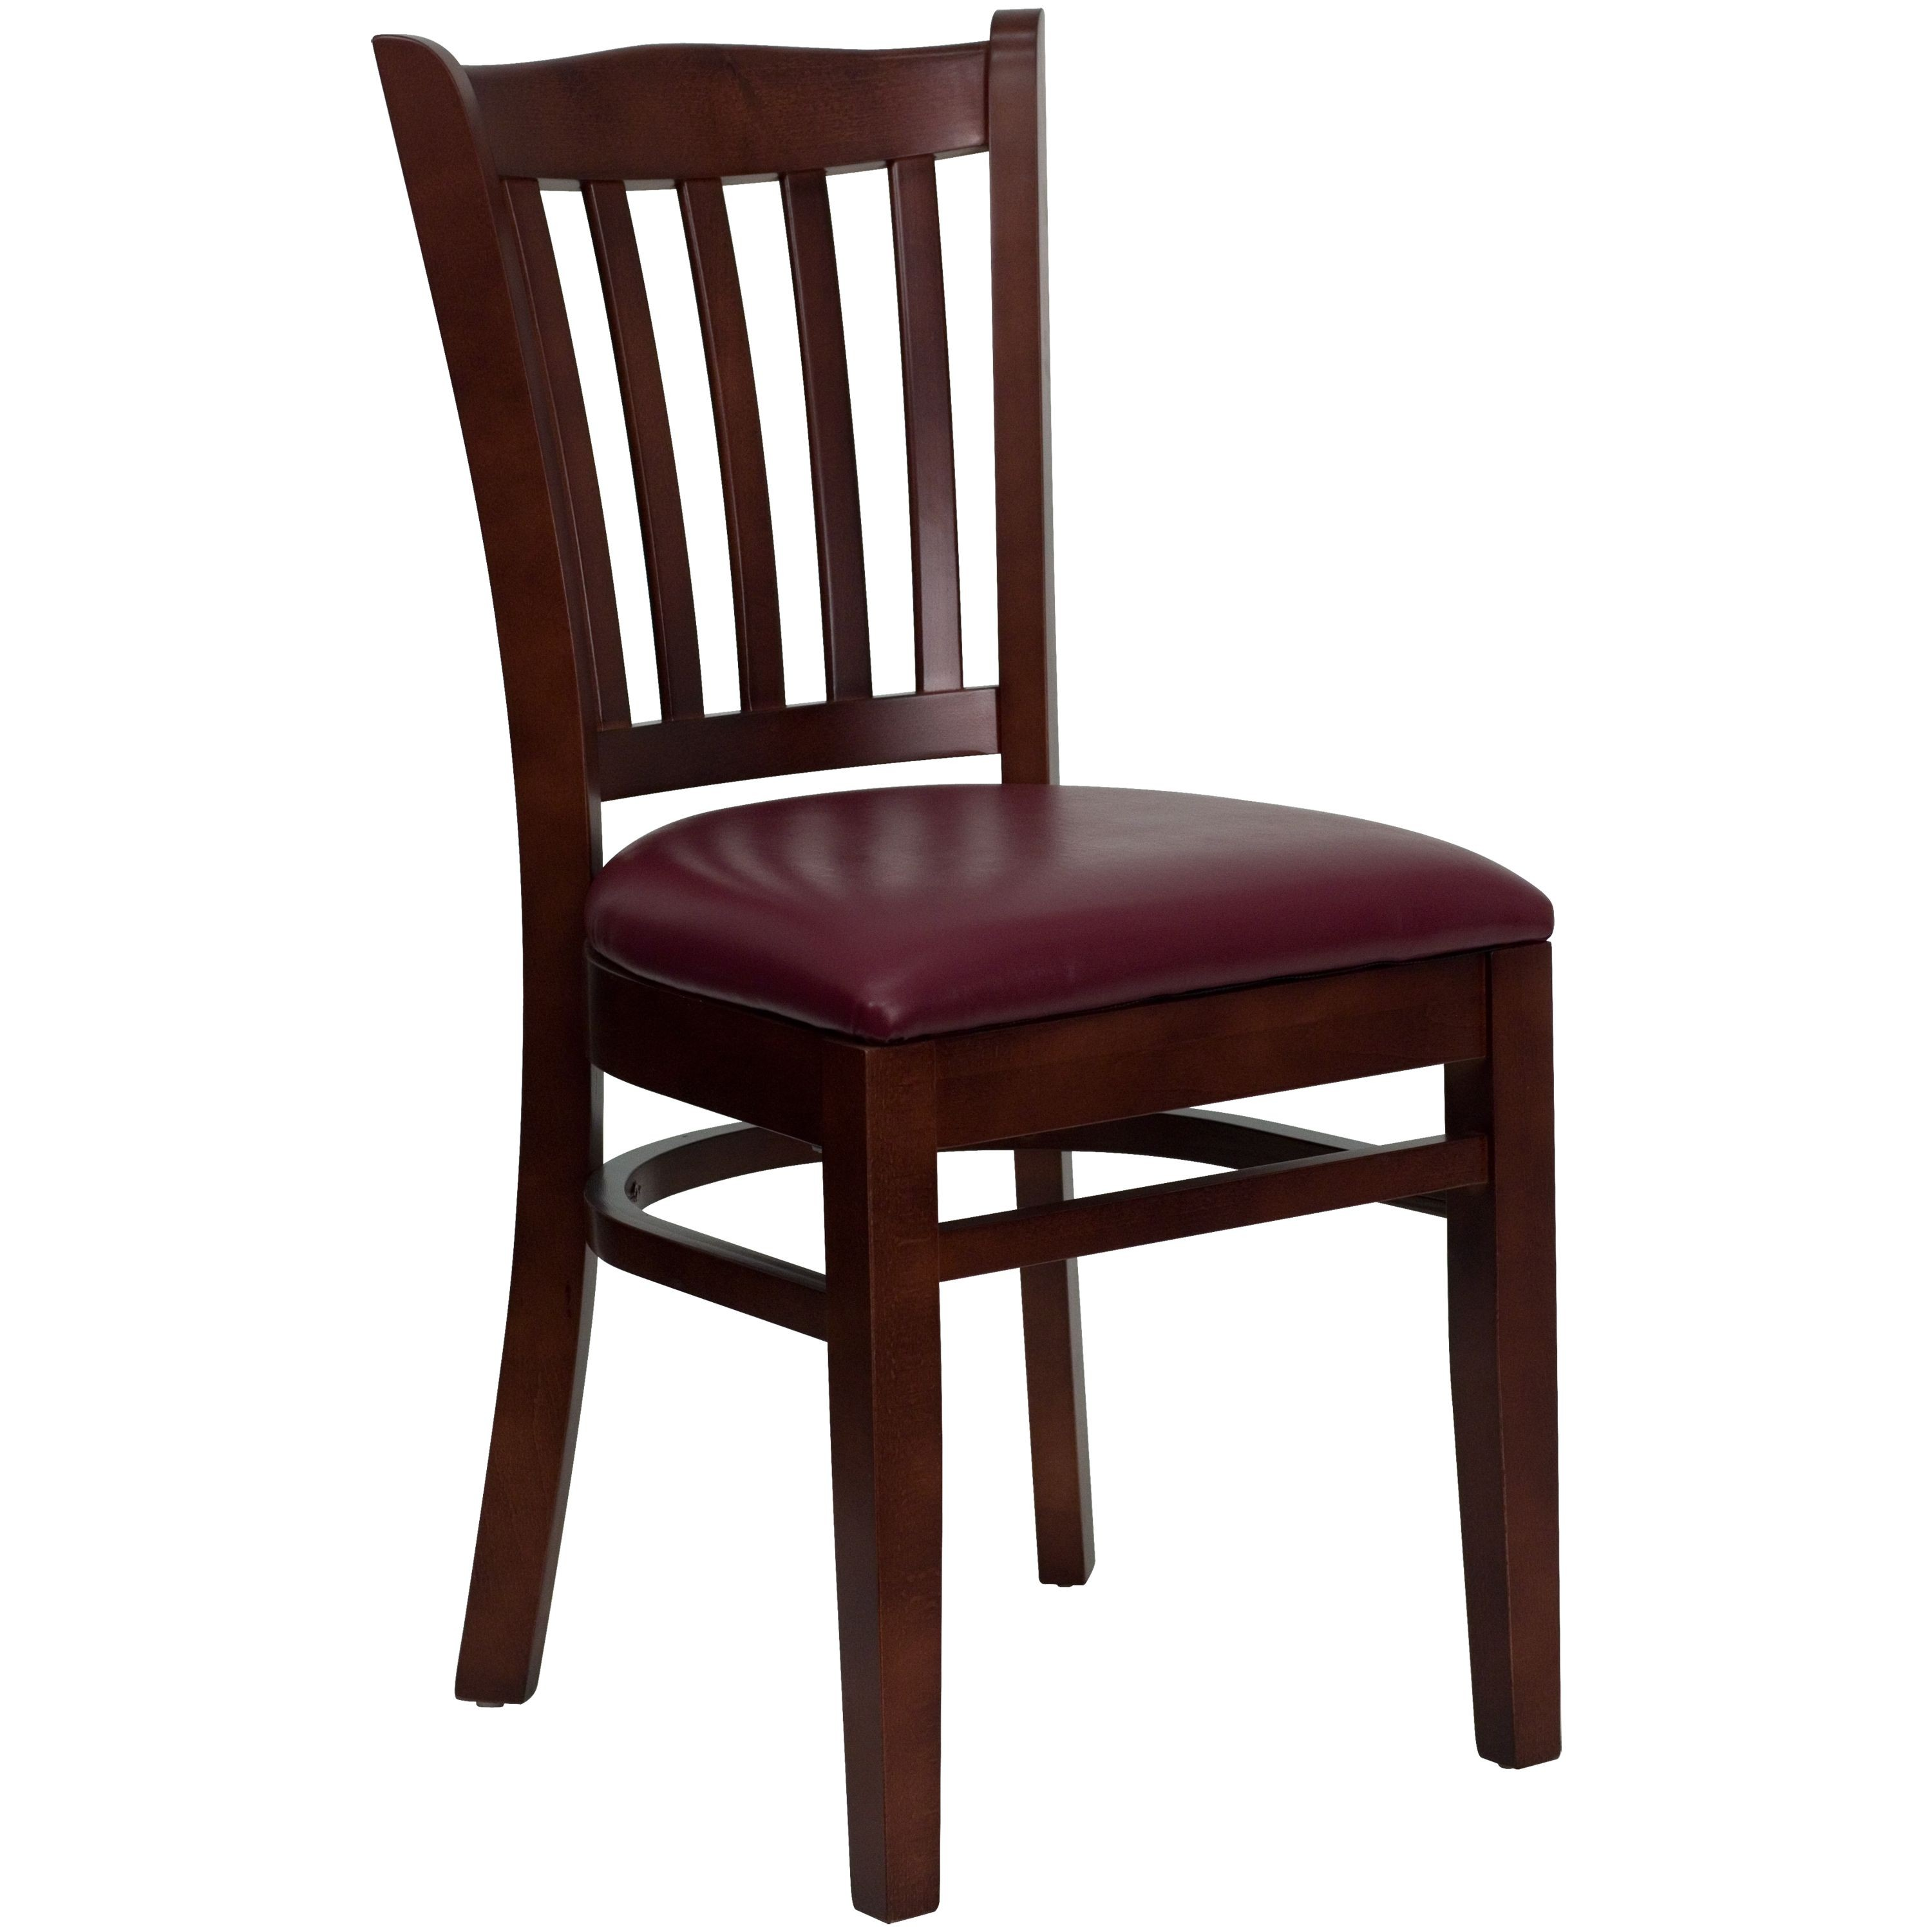 Flash Furniture XU-DGW0008VRT-MAH-BURV-GG Vertical Slat Back Mahogany Wood Chair with Burgundy Vinyl Seat